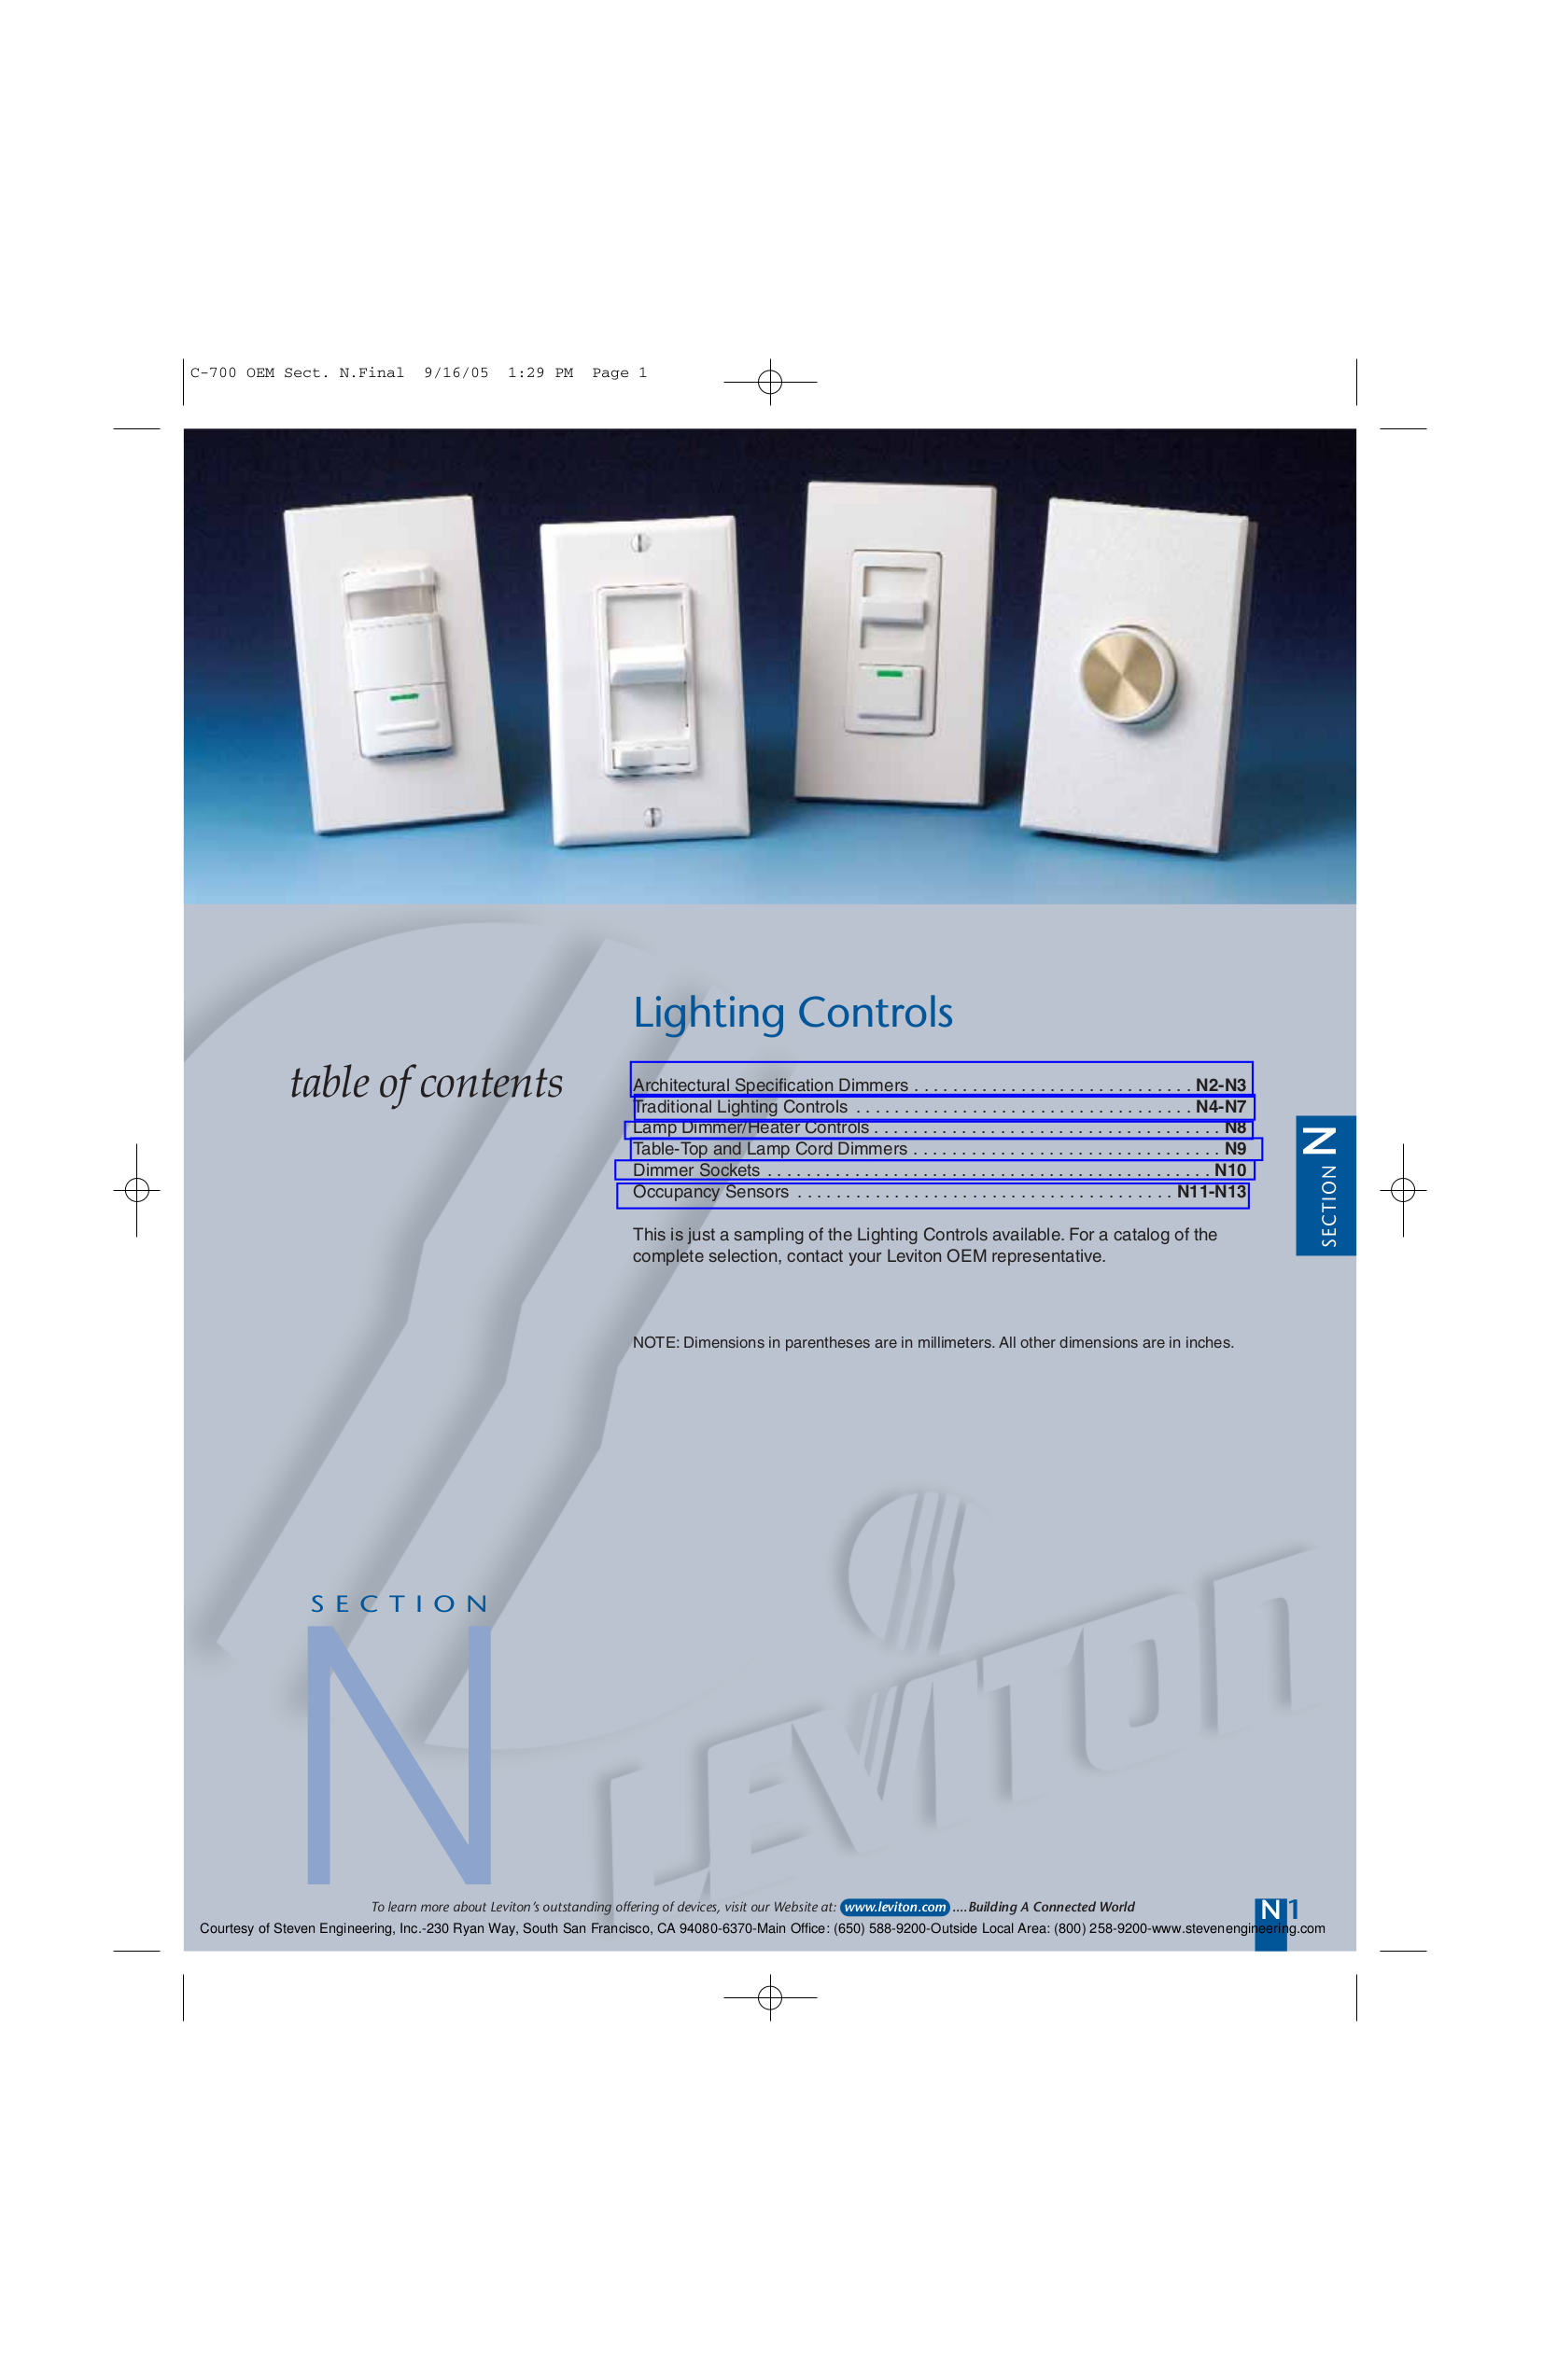 Cool Leviton Lighting Controls Manual Contemporary - Electrical ...